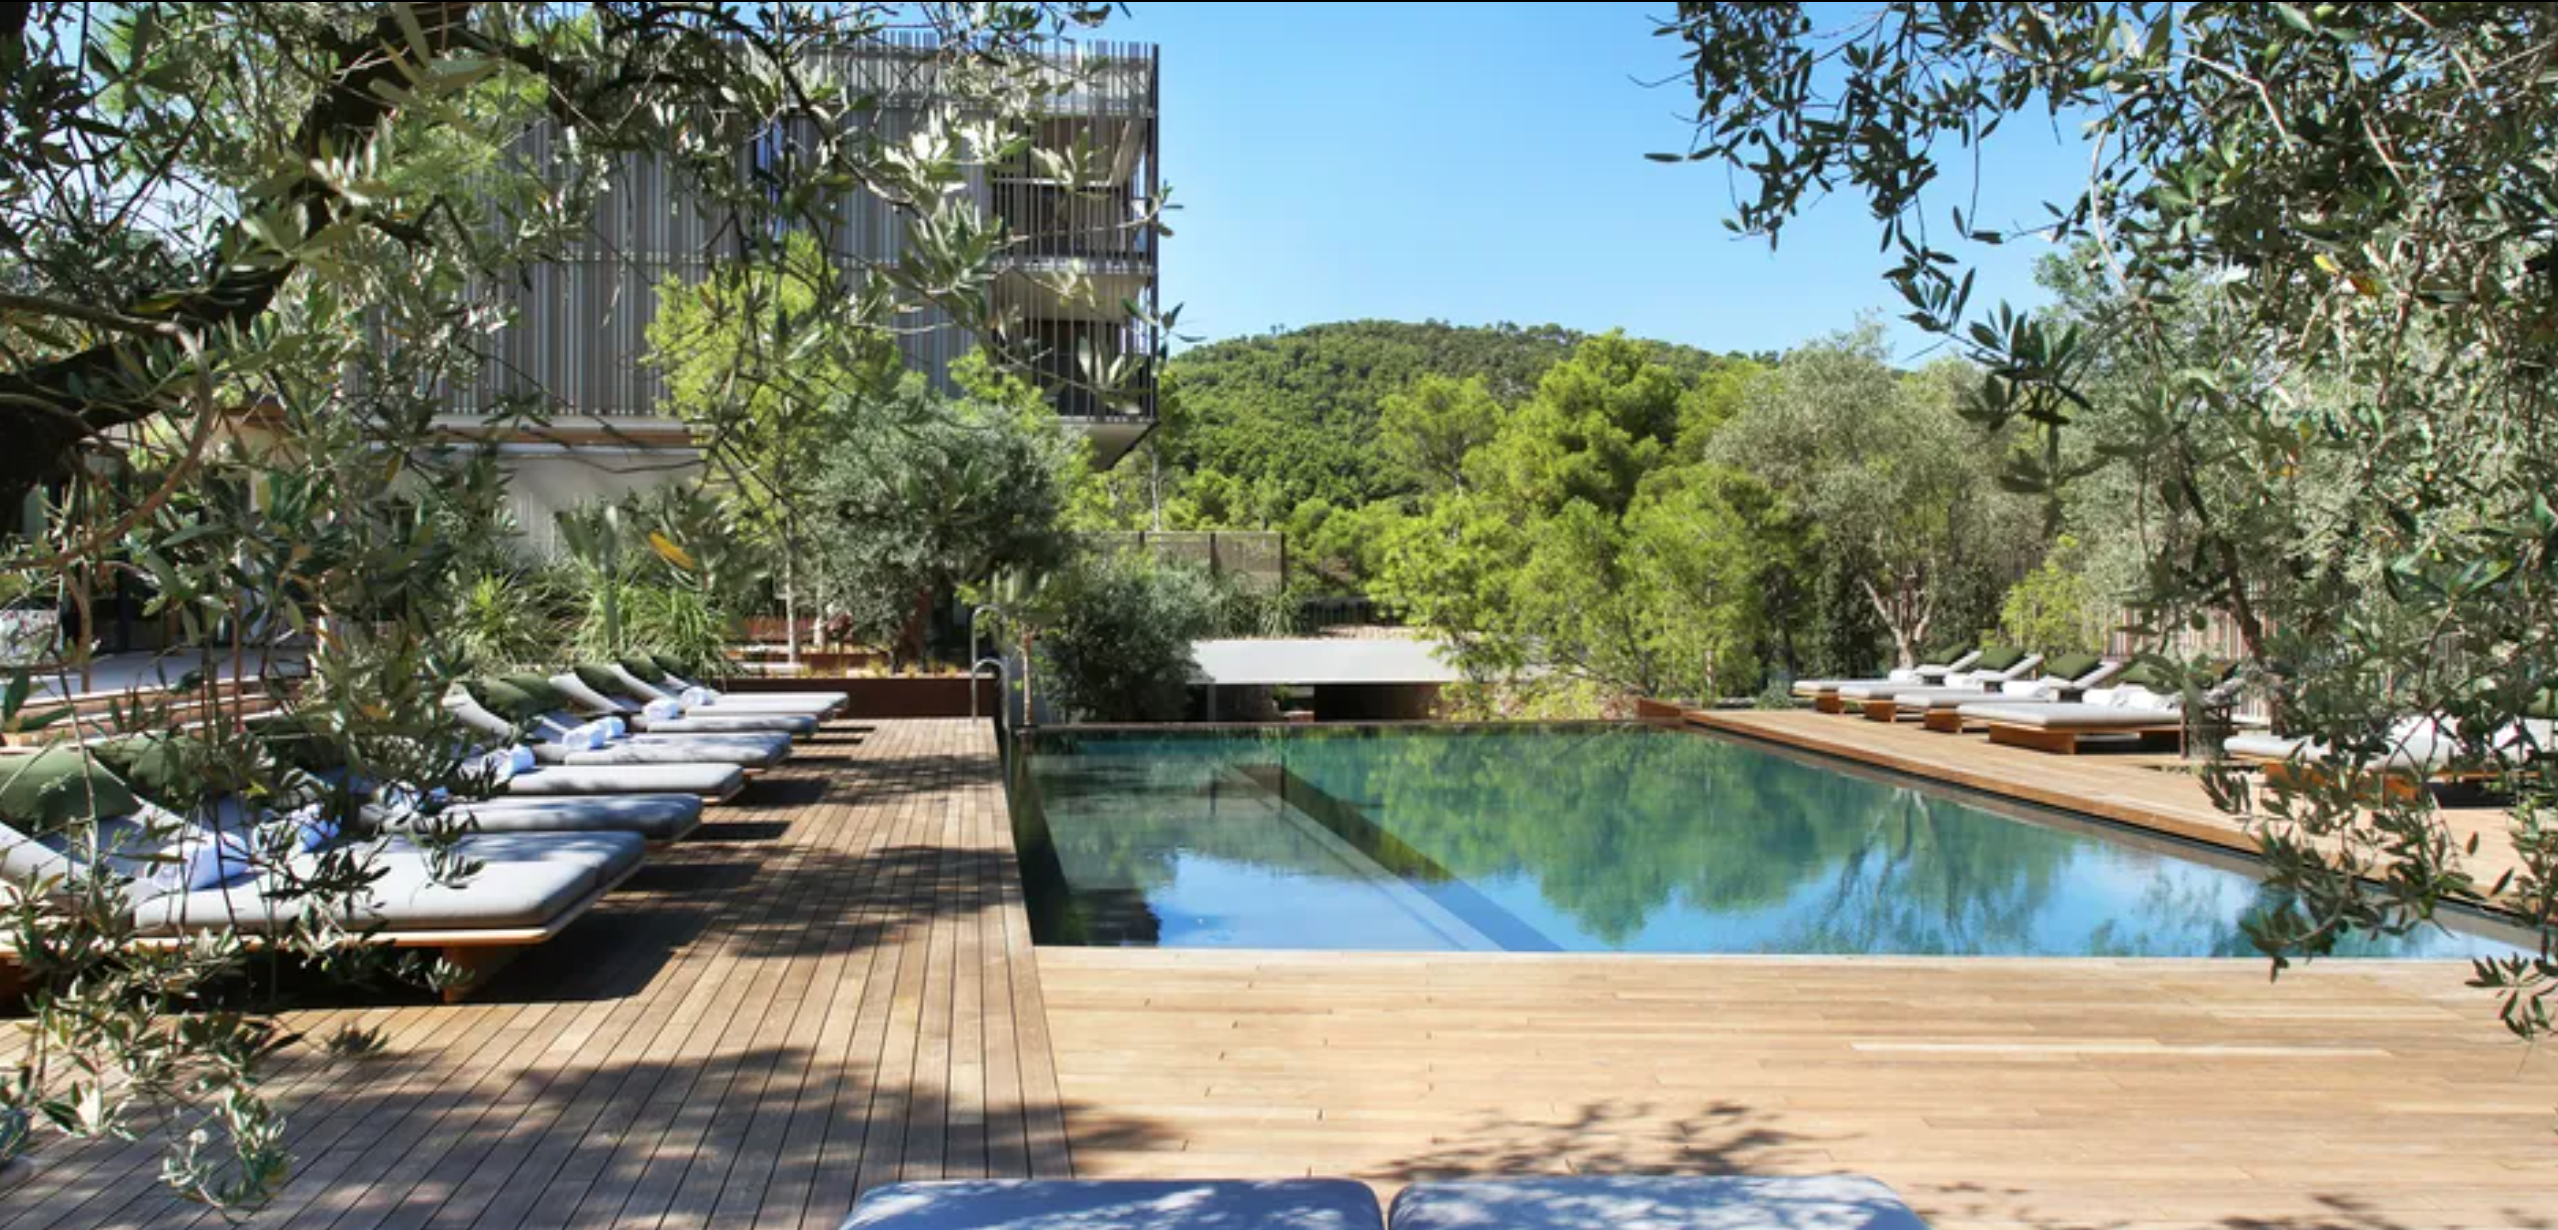 Every other week or so I send my subscribers a list of new hotels or villas that have caught my eyes. Out of those, here are the ones with pools.